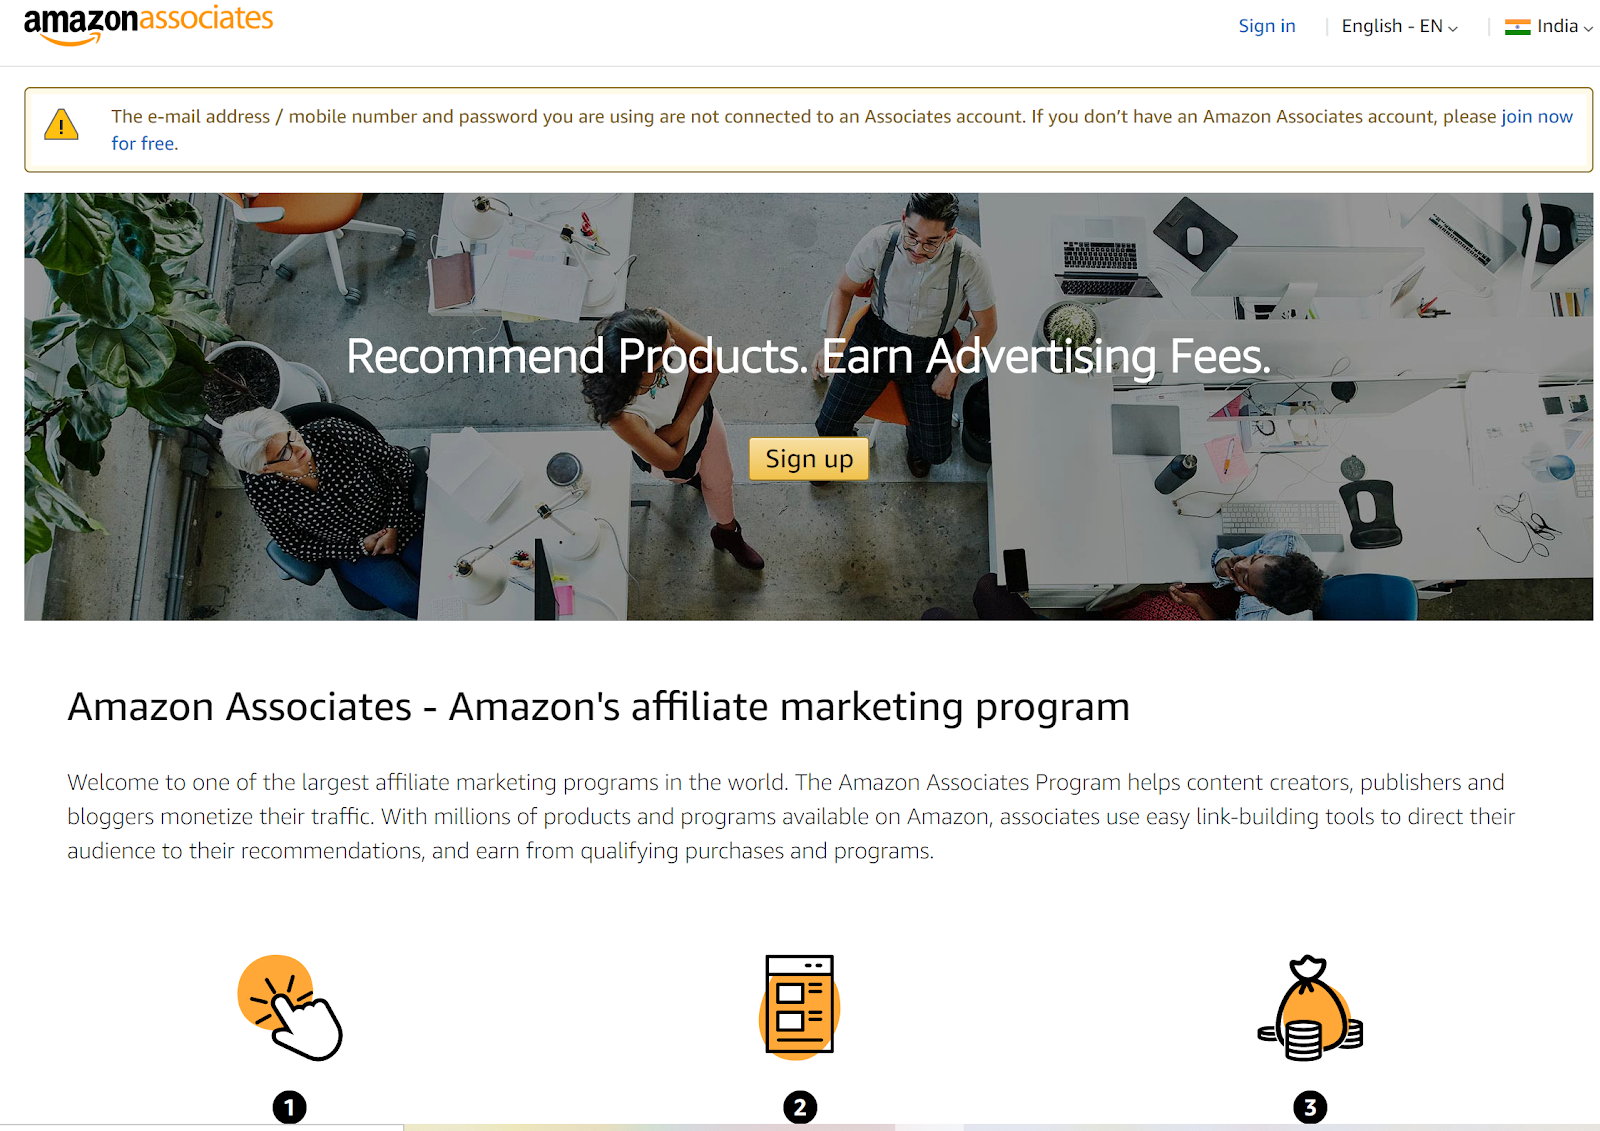 affiliate marketing for amazon, affiliate marketing by amazon, affiliate marketing at amazon, amazon.in affiliate marketing